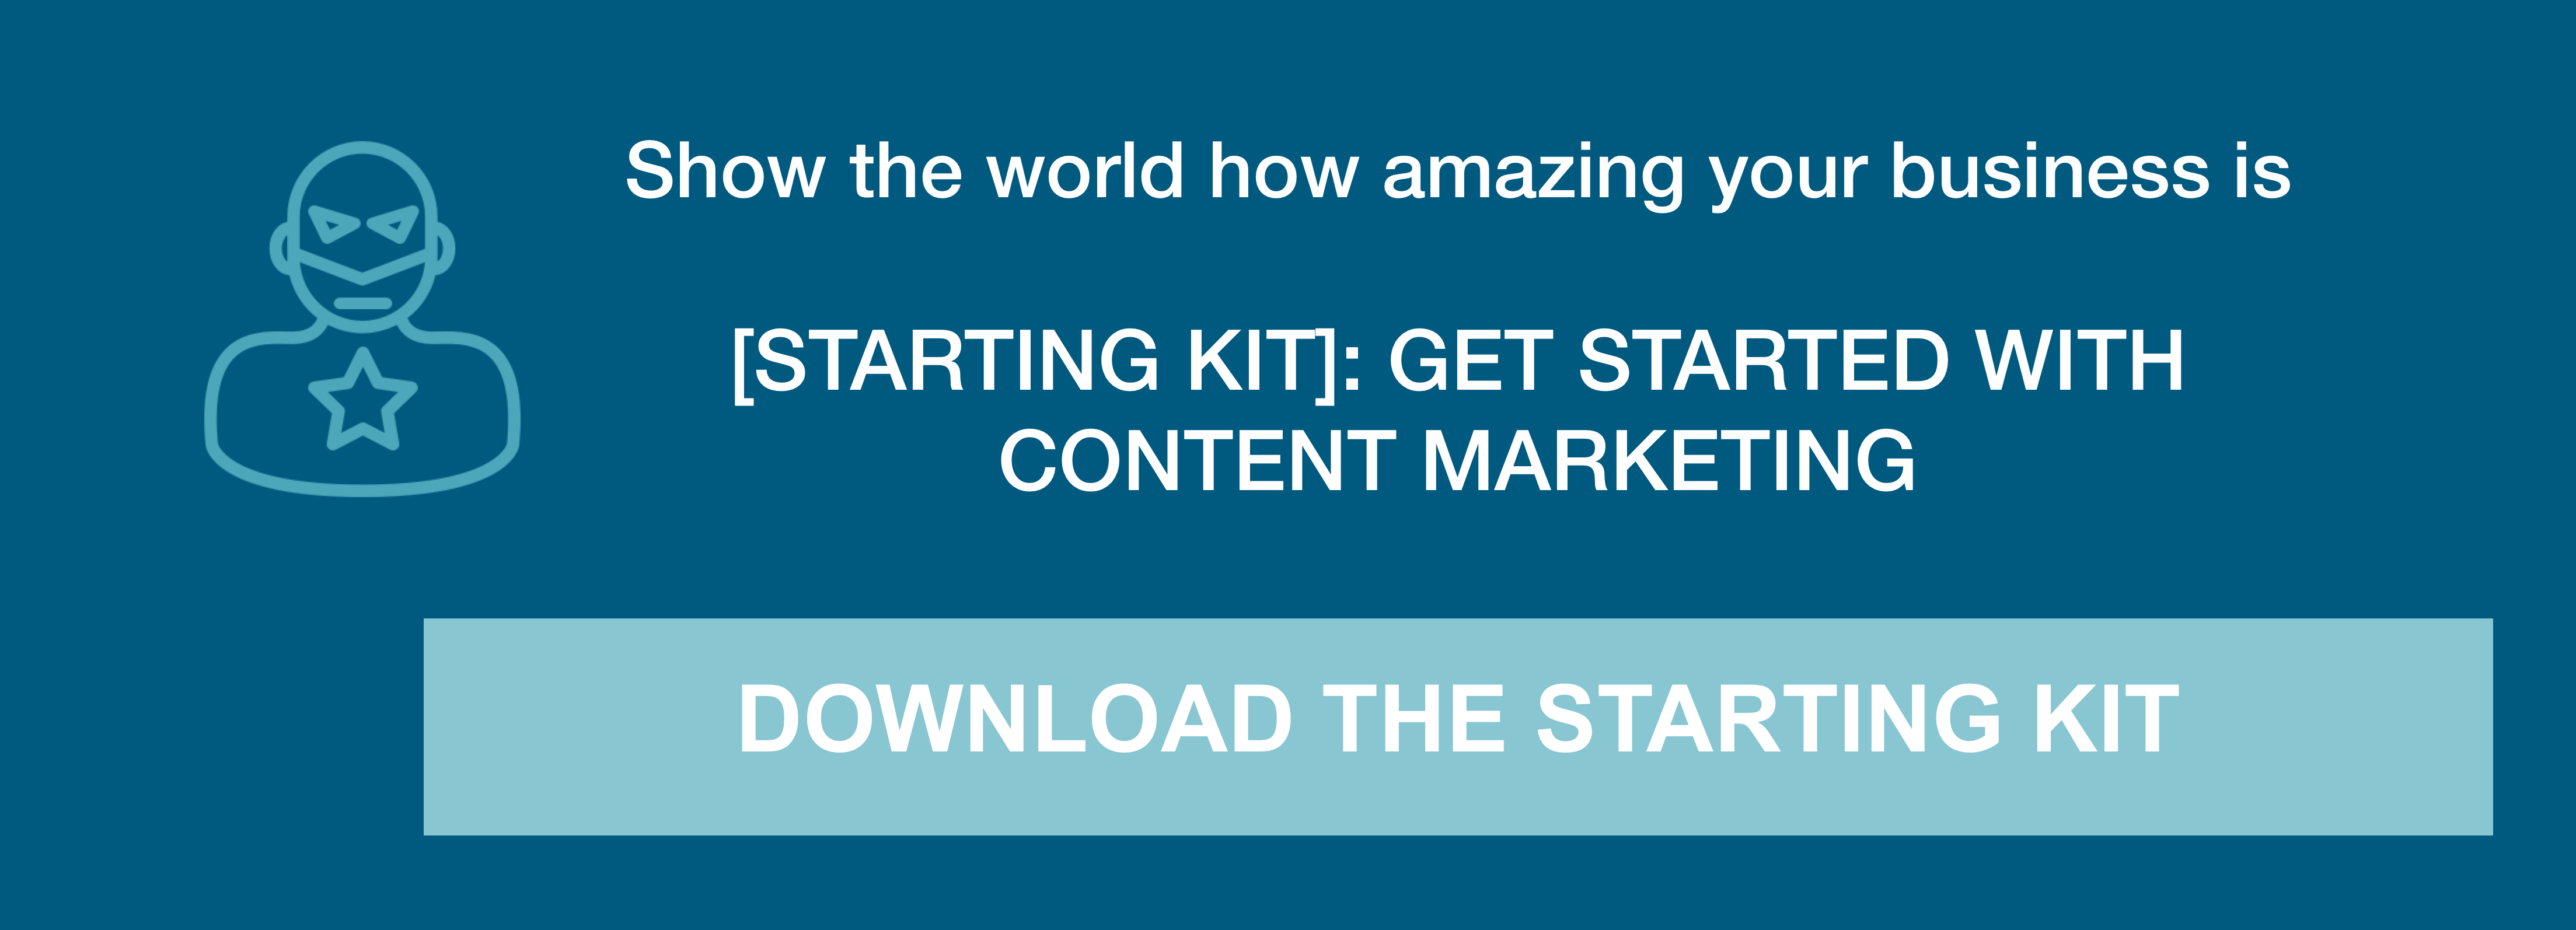 get started with content marketing today